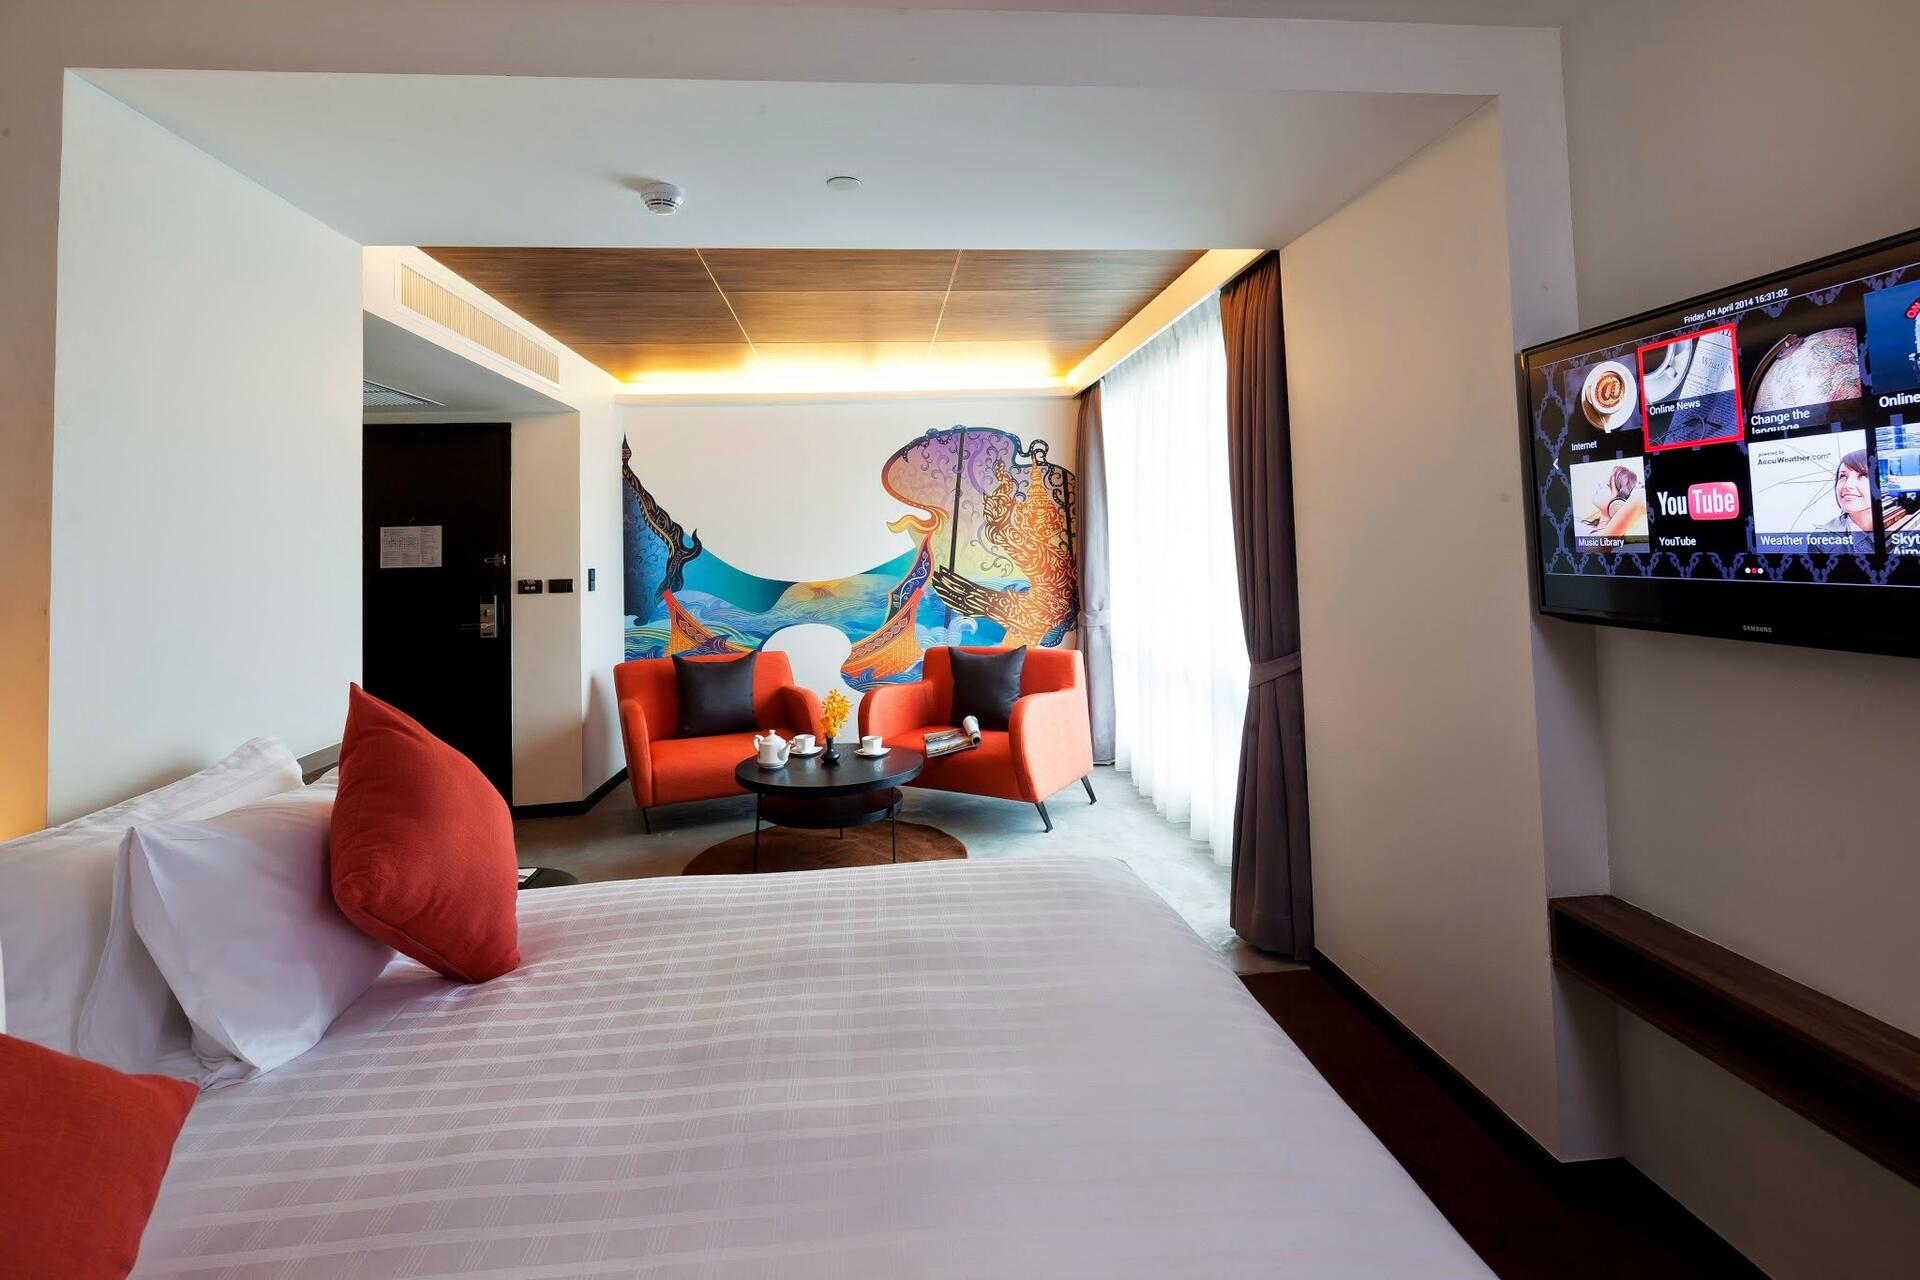 Hotel Bedroom with sitting area, television and a decorative wal